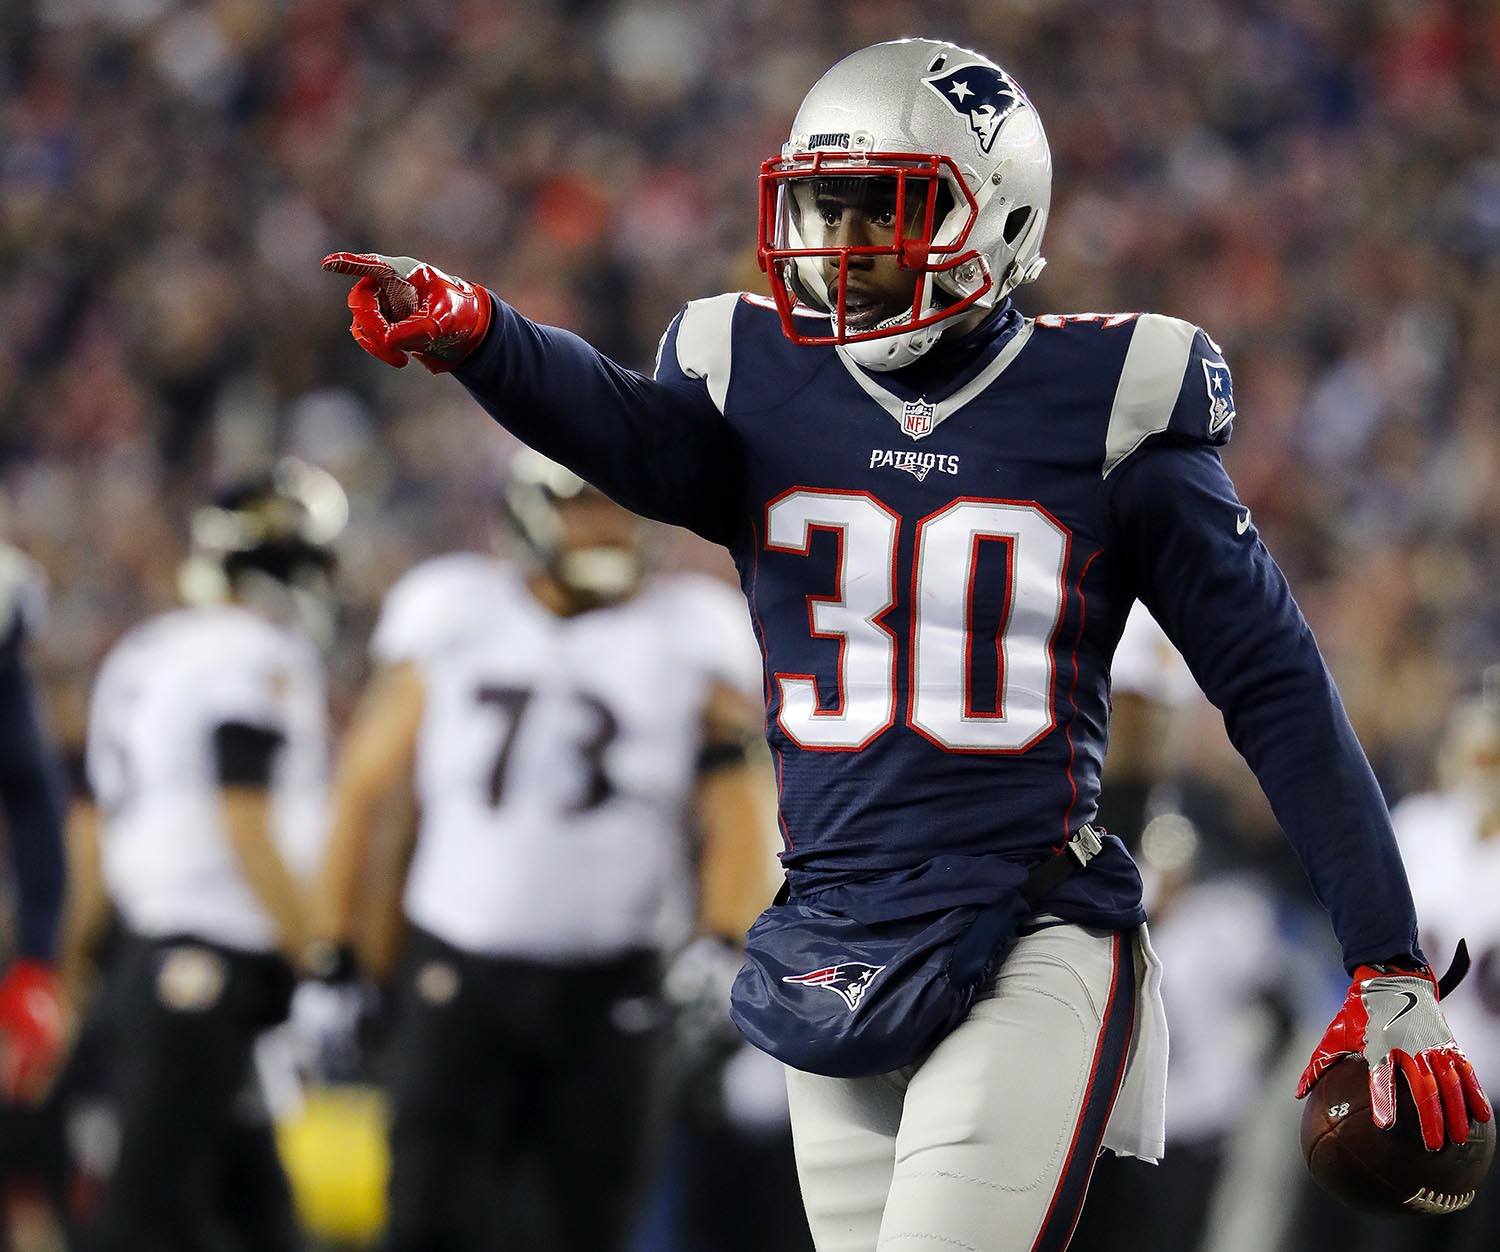 "<div class=""meta image-caption""><div class=""origin-logo origin-image ap""><span>AP</span></div><span class=""caption-text"">New England Patriots' defensive back Duron Harmon attended Rutgers University in New Brunswick, NJ. (Winslow Townson/AP Images for Panini)</span></div>"